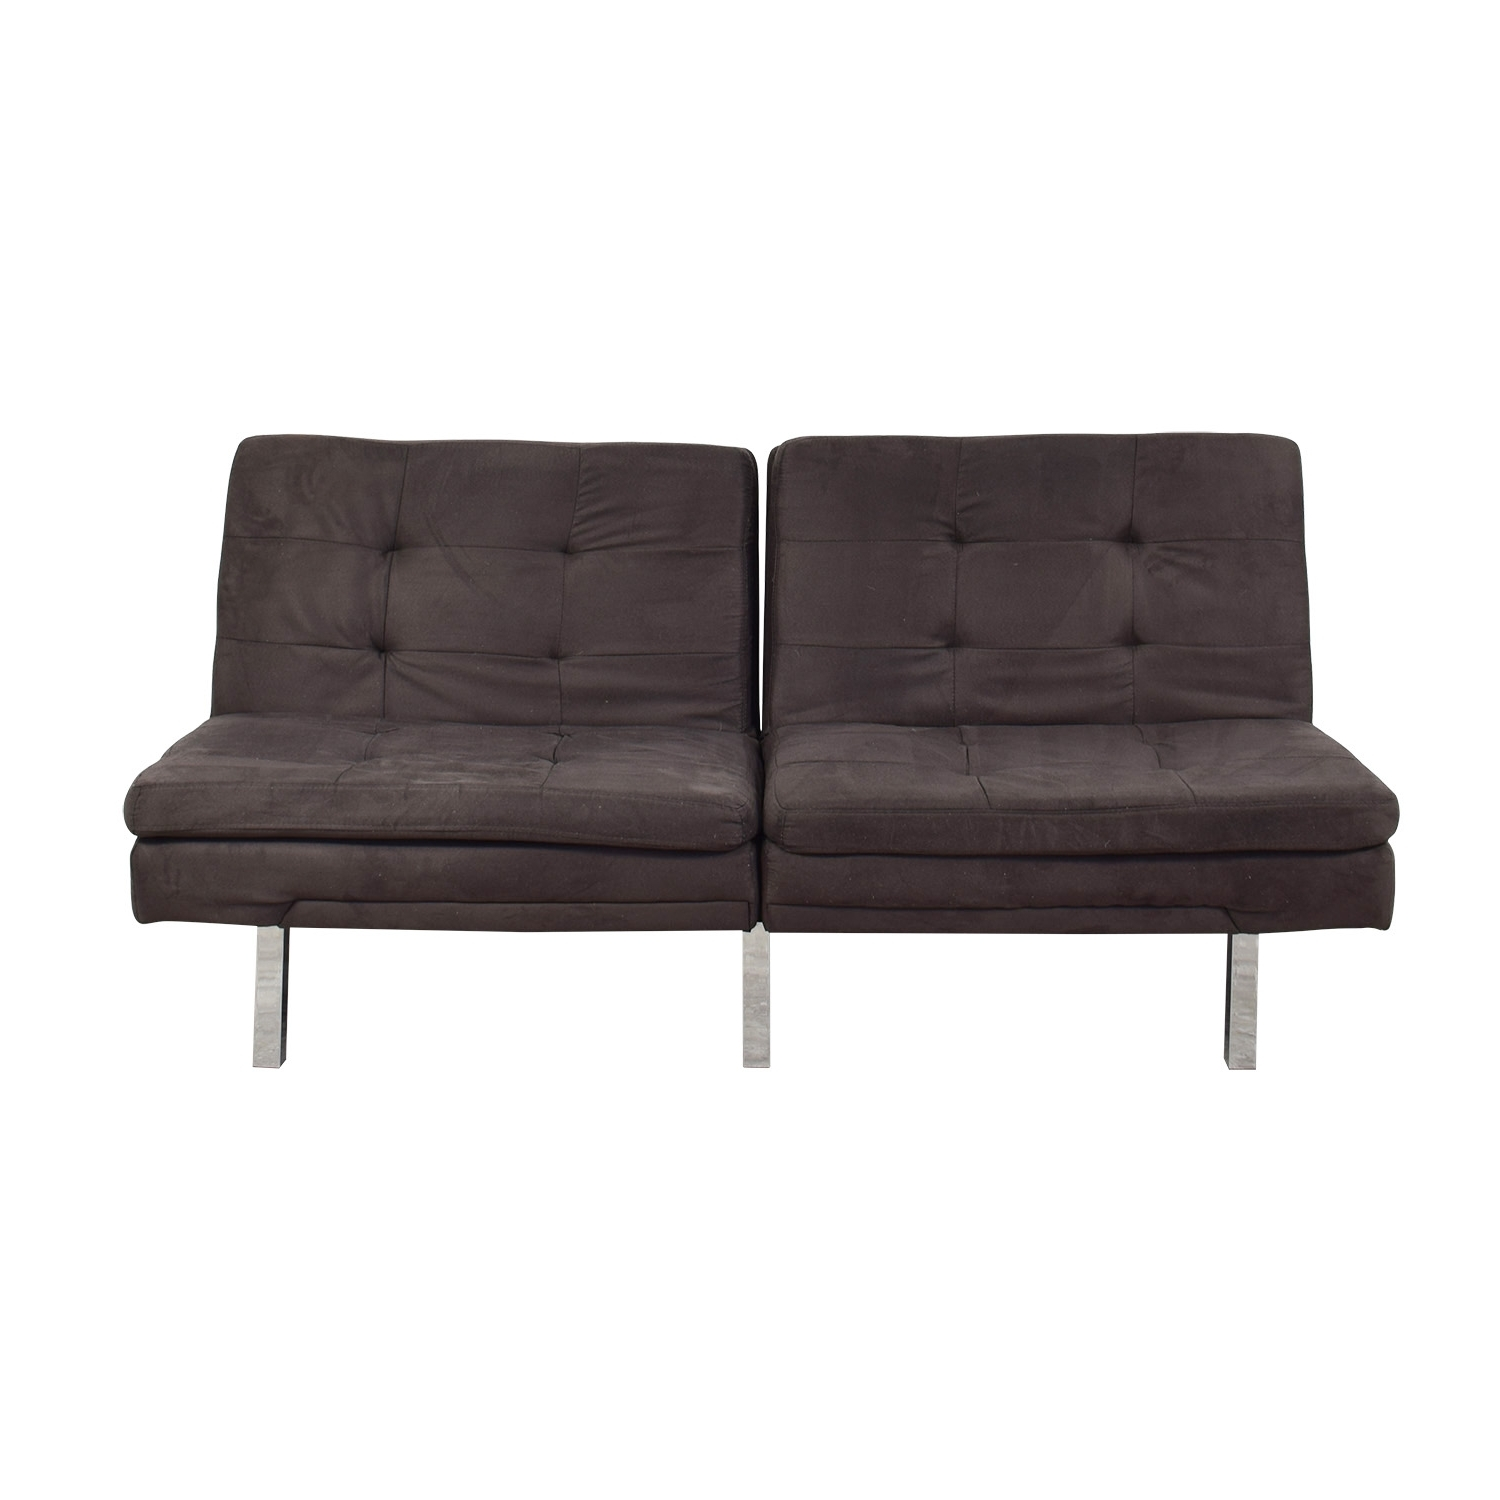 [%55% Off – Charcoal Convertible Sofa / Sofas Intended For Popular Convertible Sofas|convertible Sofas Regarding Newest 55% Off – Charcoal Convertible Sofa / Sofas|best And Newest Convertible Sofas With 55% Off – Charcoal Convertible Sofa / Sofas|well Liked 55% Off – Charcoal Convertible Sofa / Sofas Regarding Convertible Sofas%] (View 15 of 20)